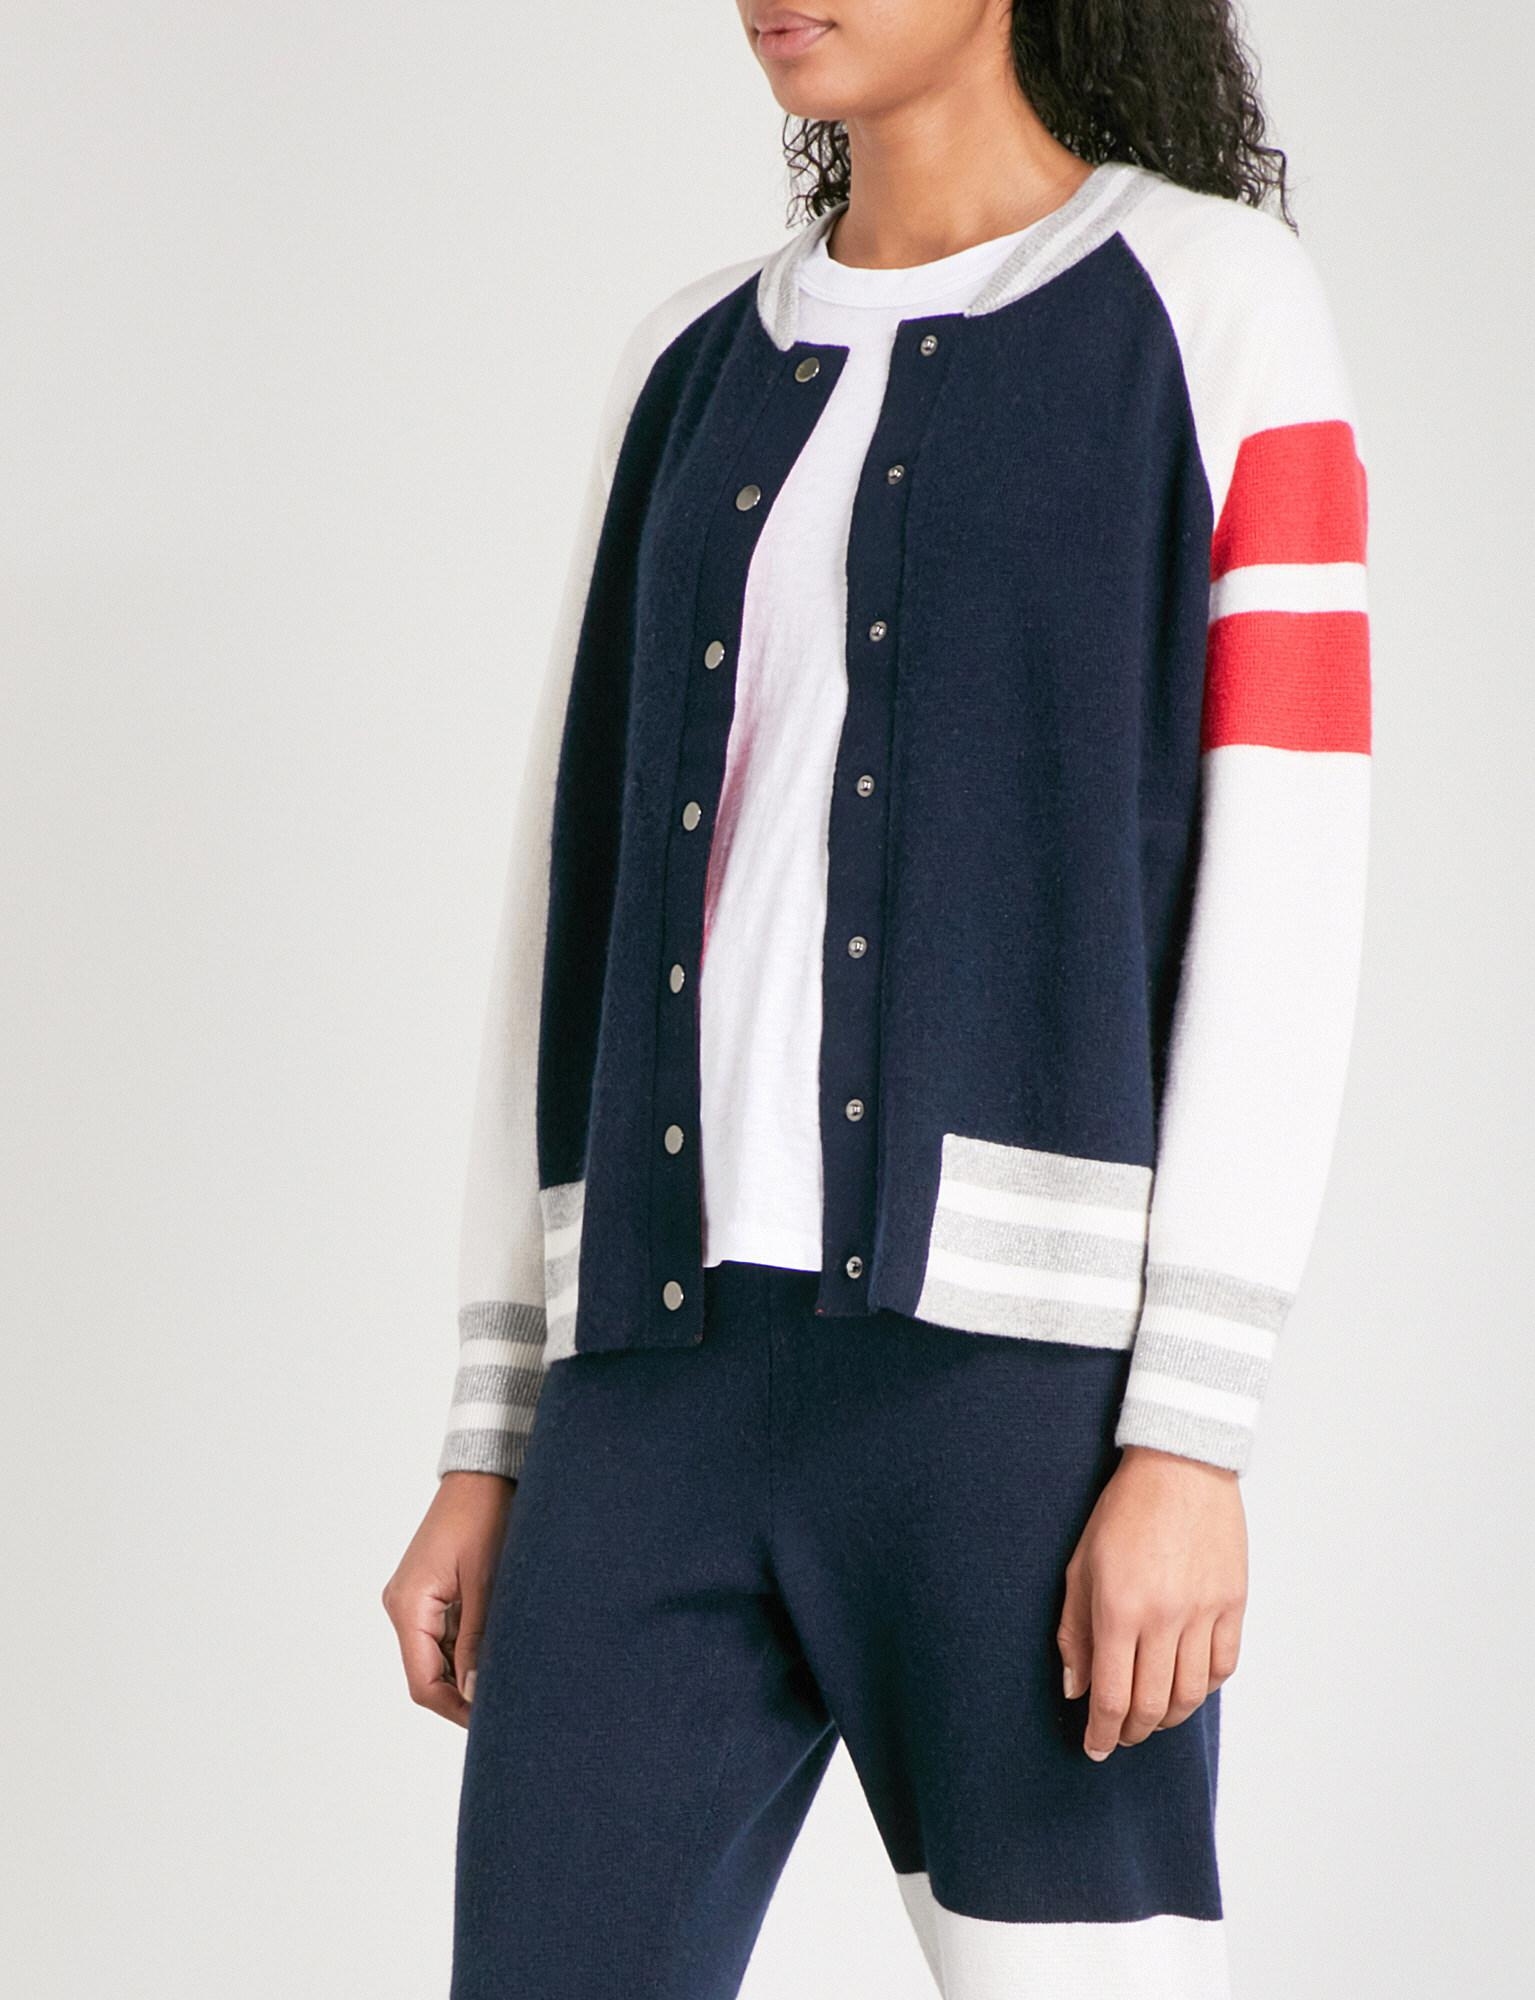 zoe-jordan-Navy-white-red-Edison-Wool-And-Cashmere-blend-Bomber-Jacket.jpeg 4466f1a66b9